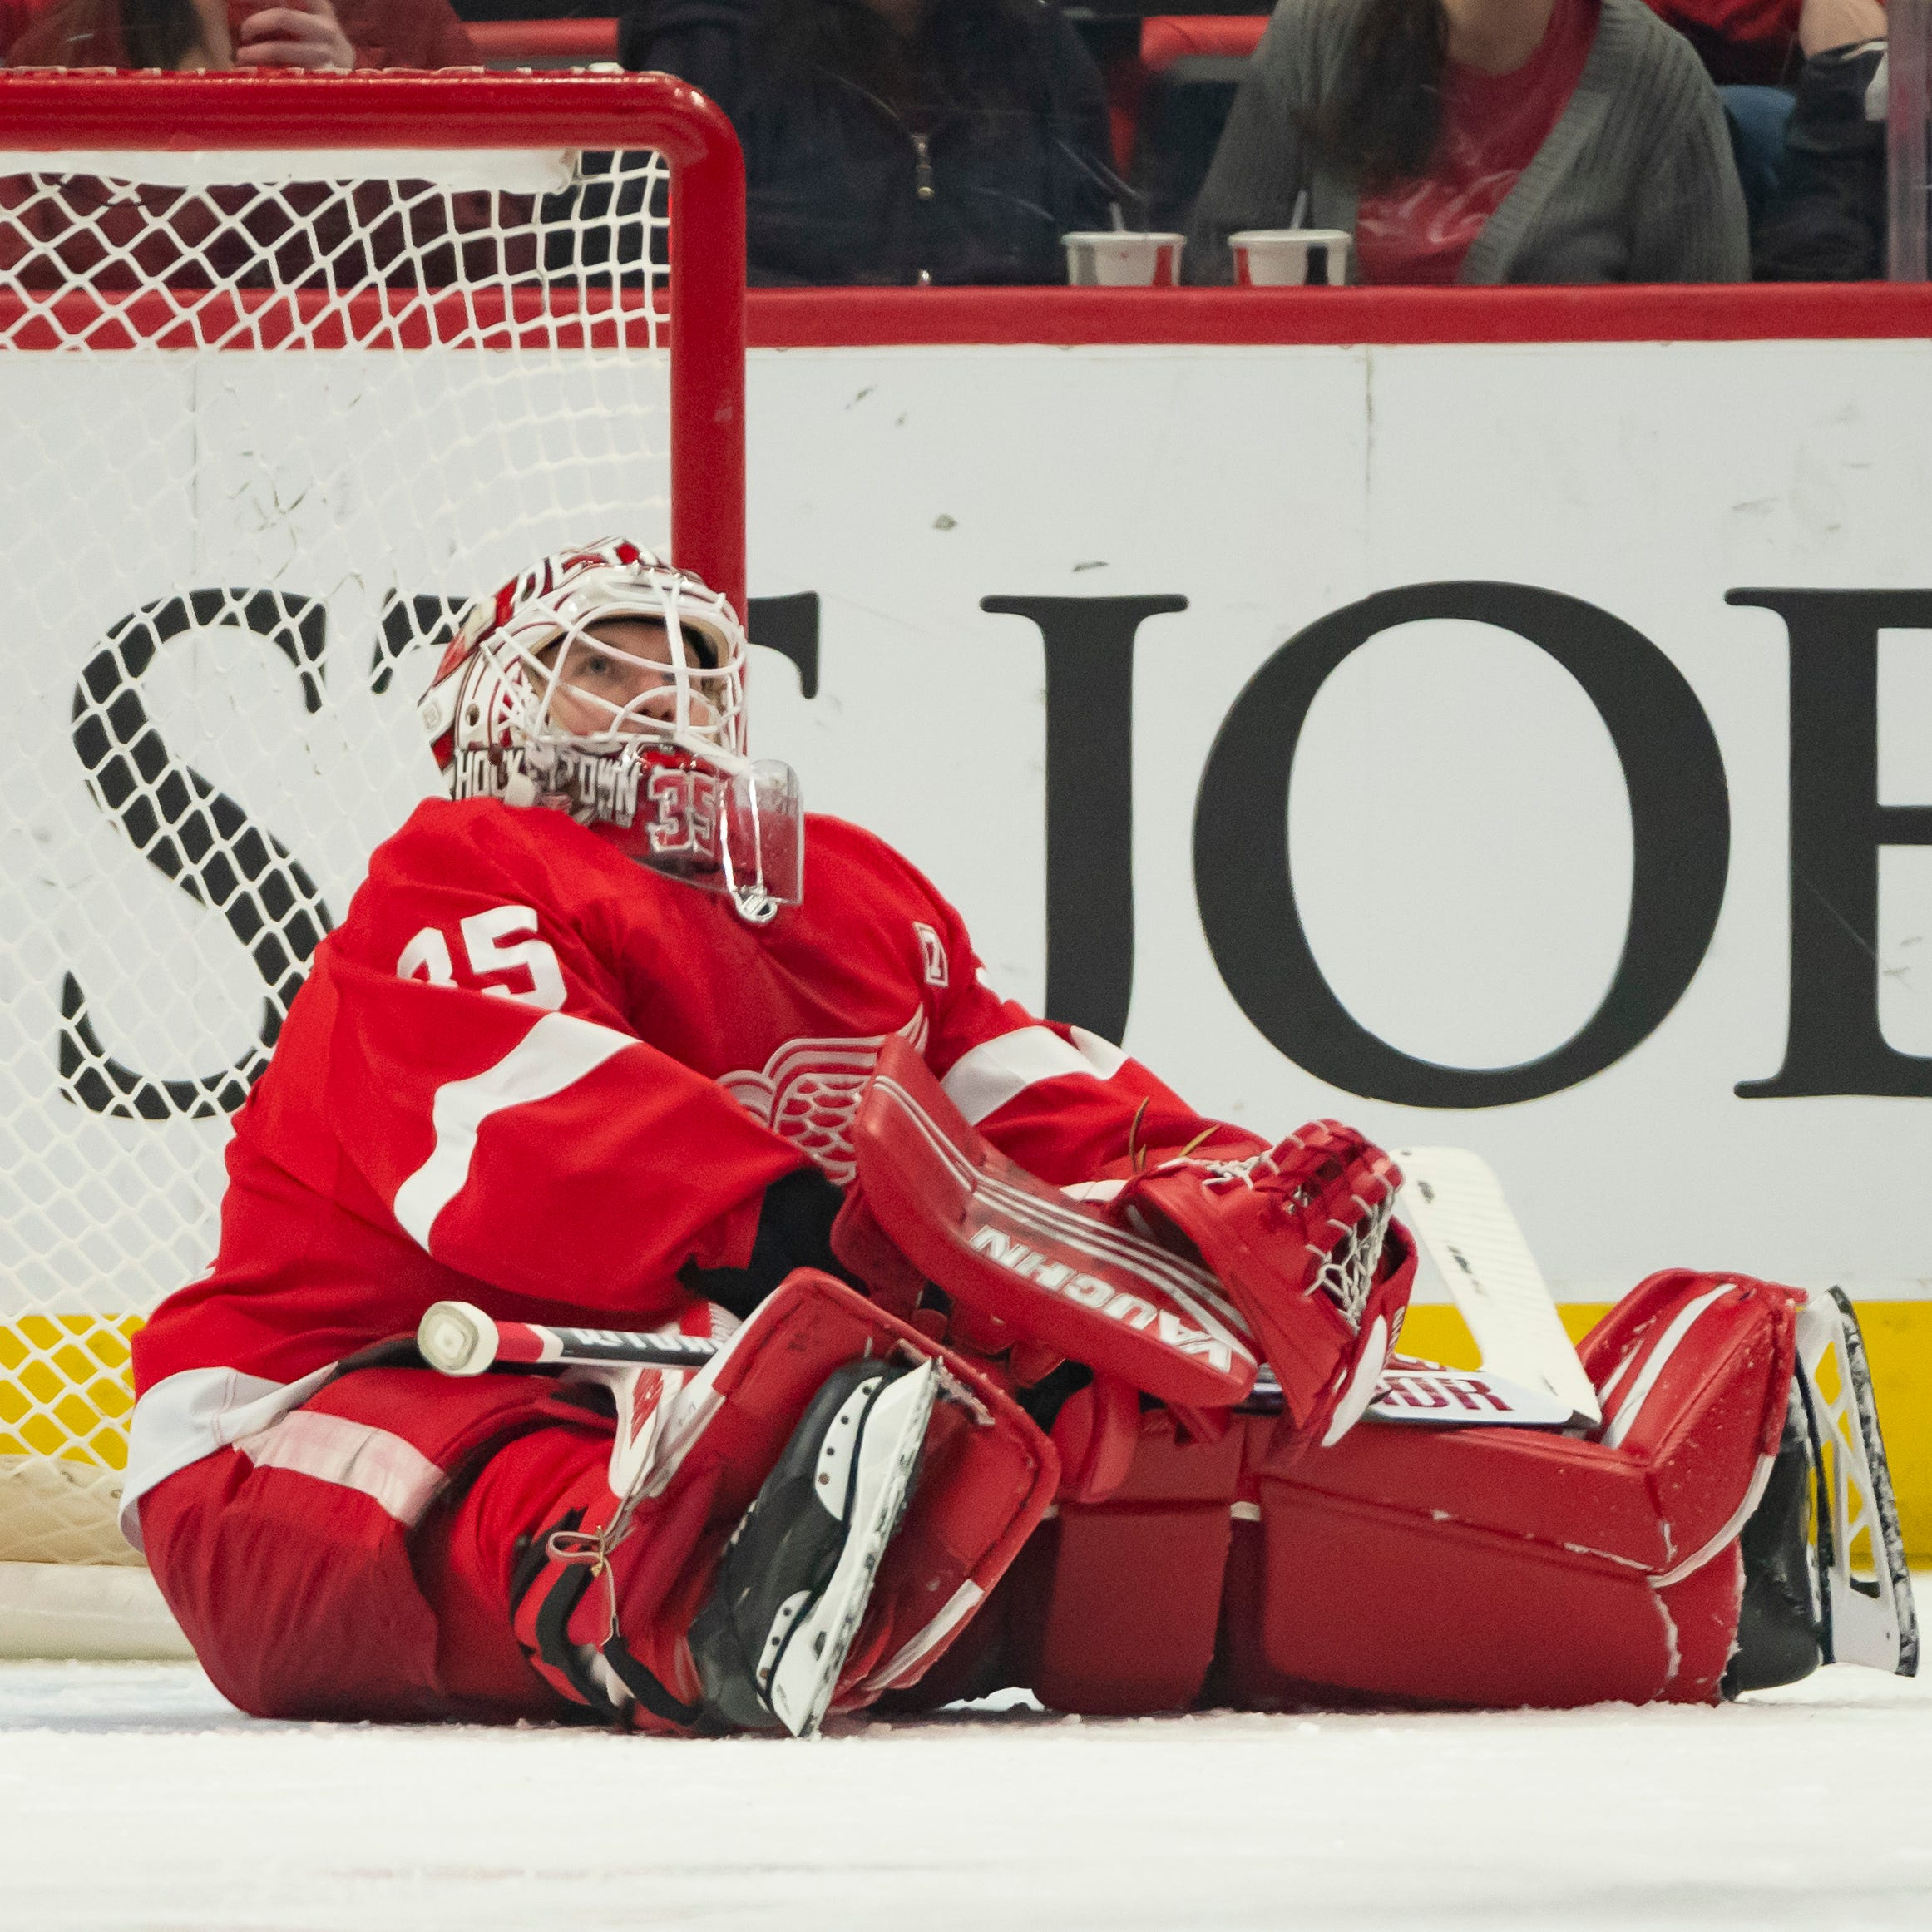 'It stinks': Red Wings end season with a thud, losing 7-1 to Sabres